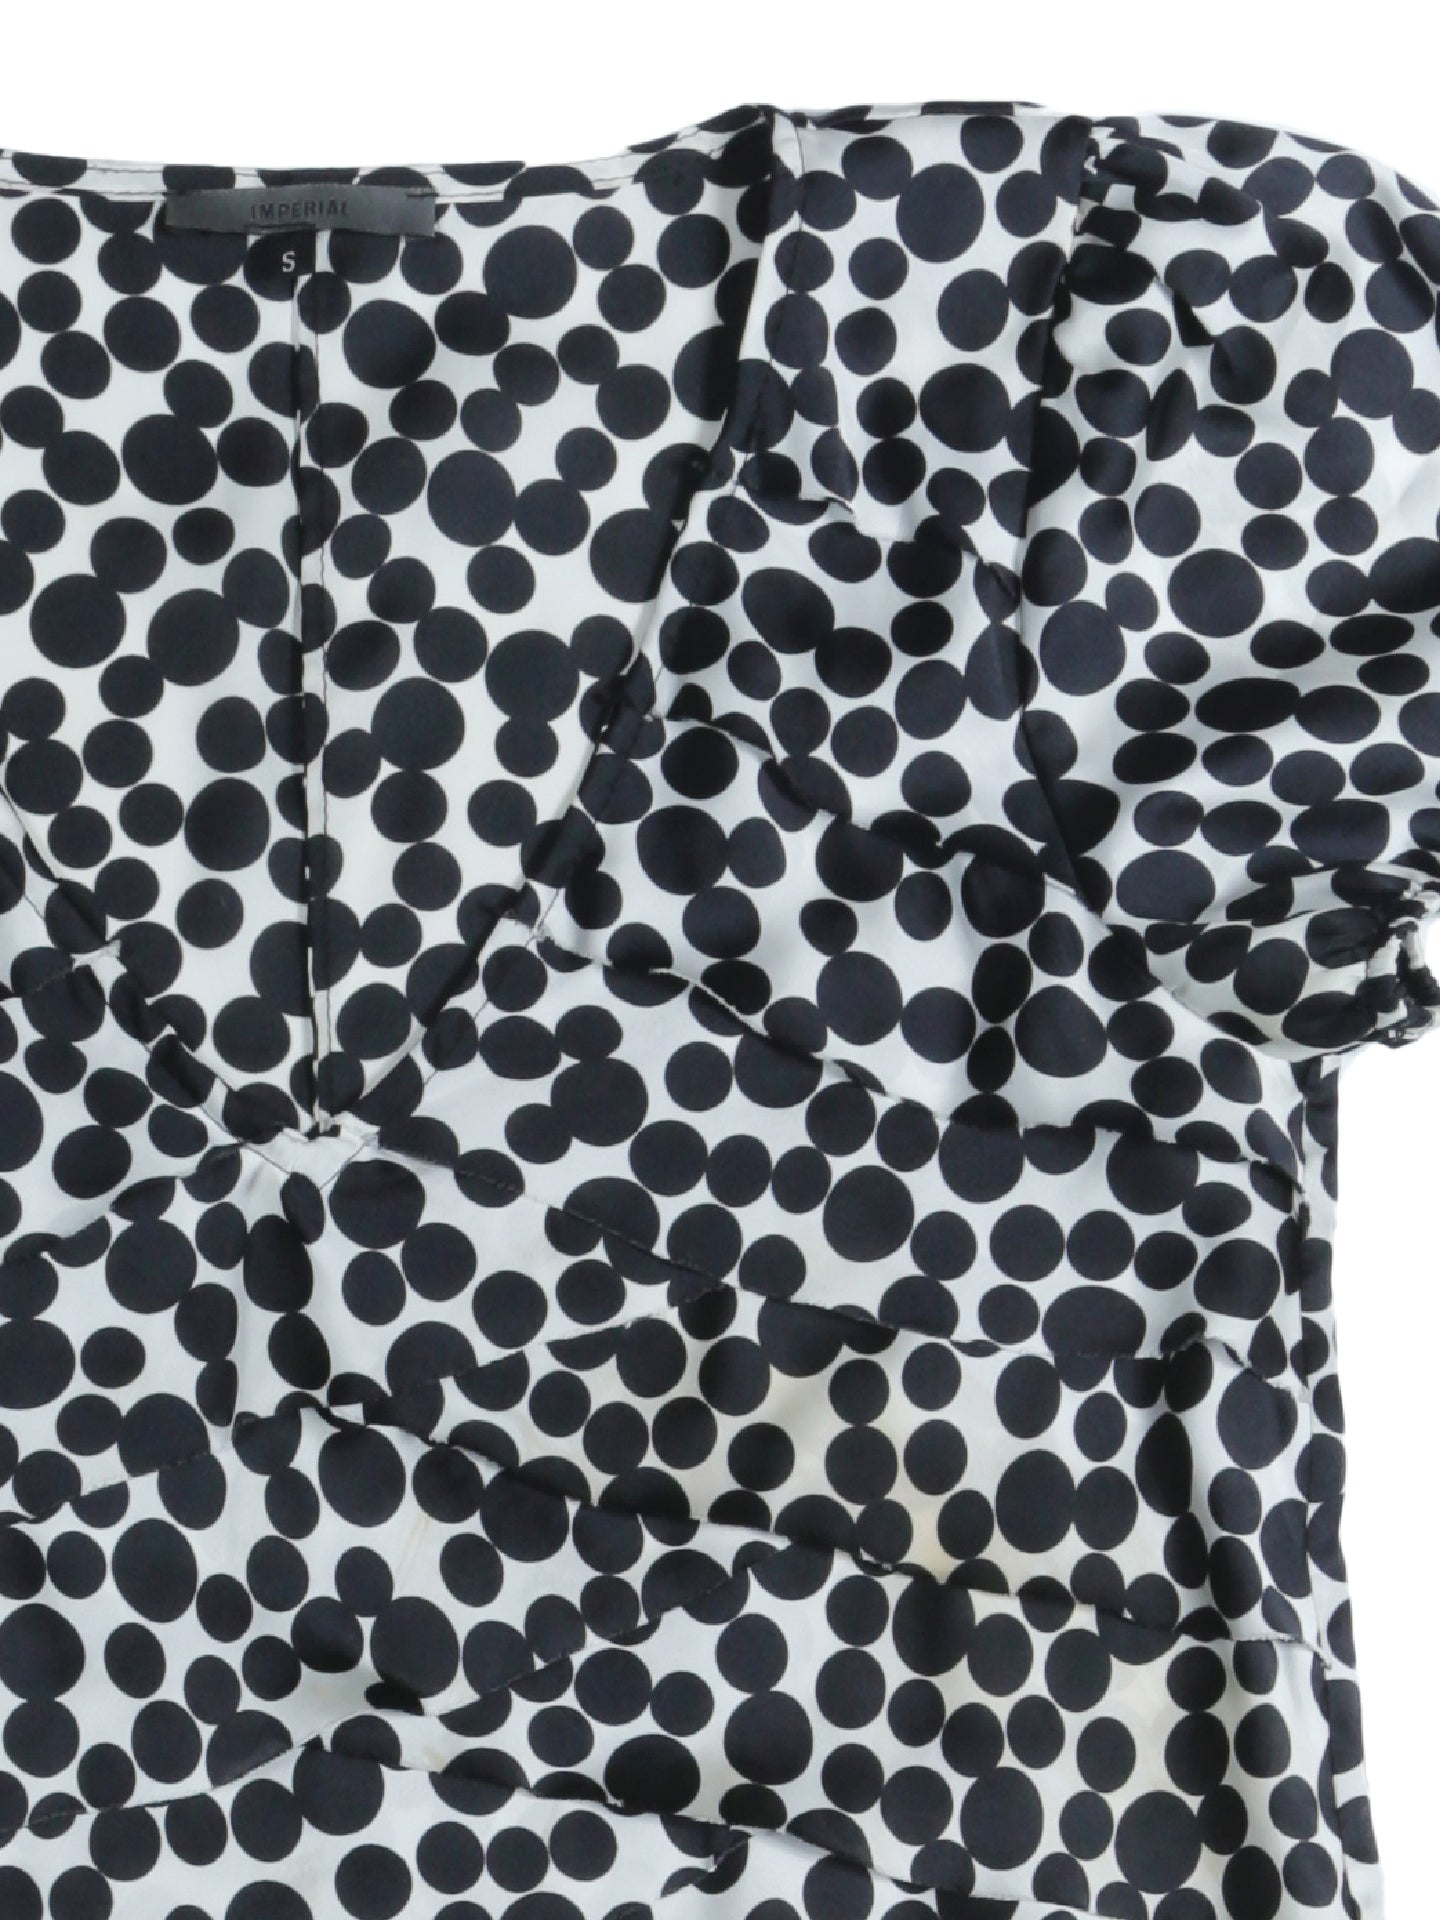 Imperial Black and White Polka Dot Dress Size S